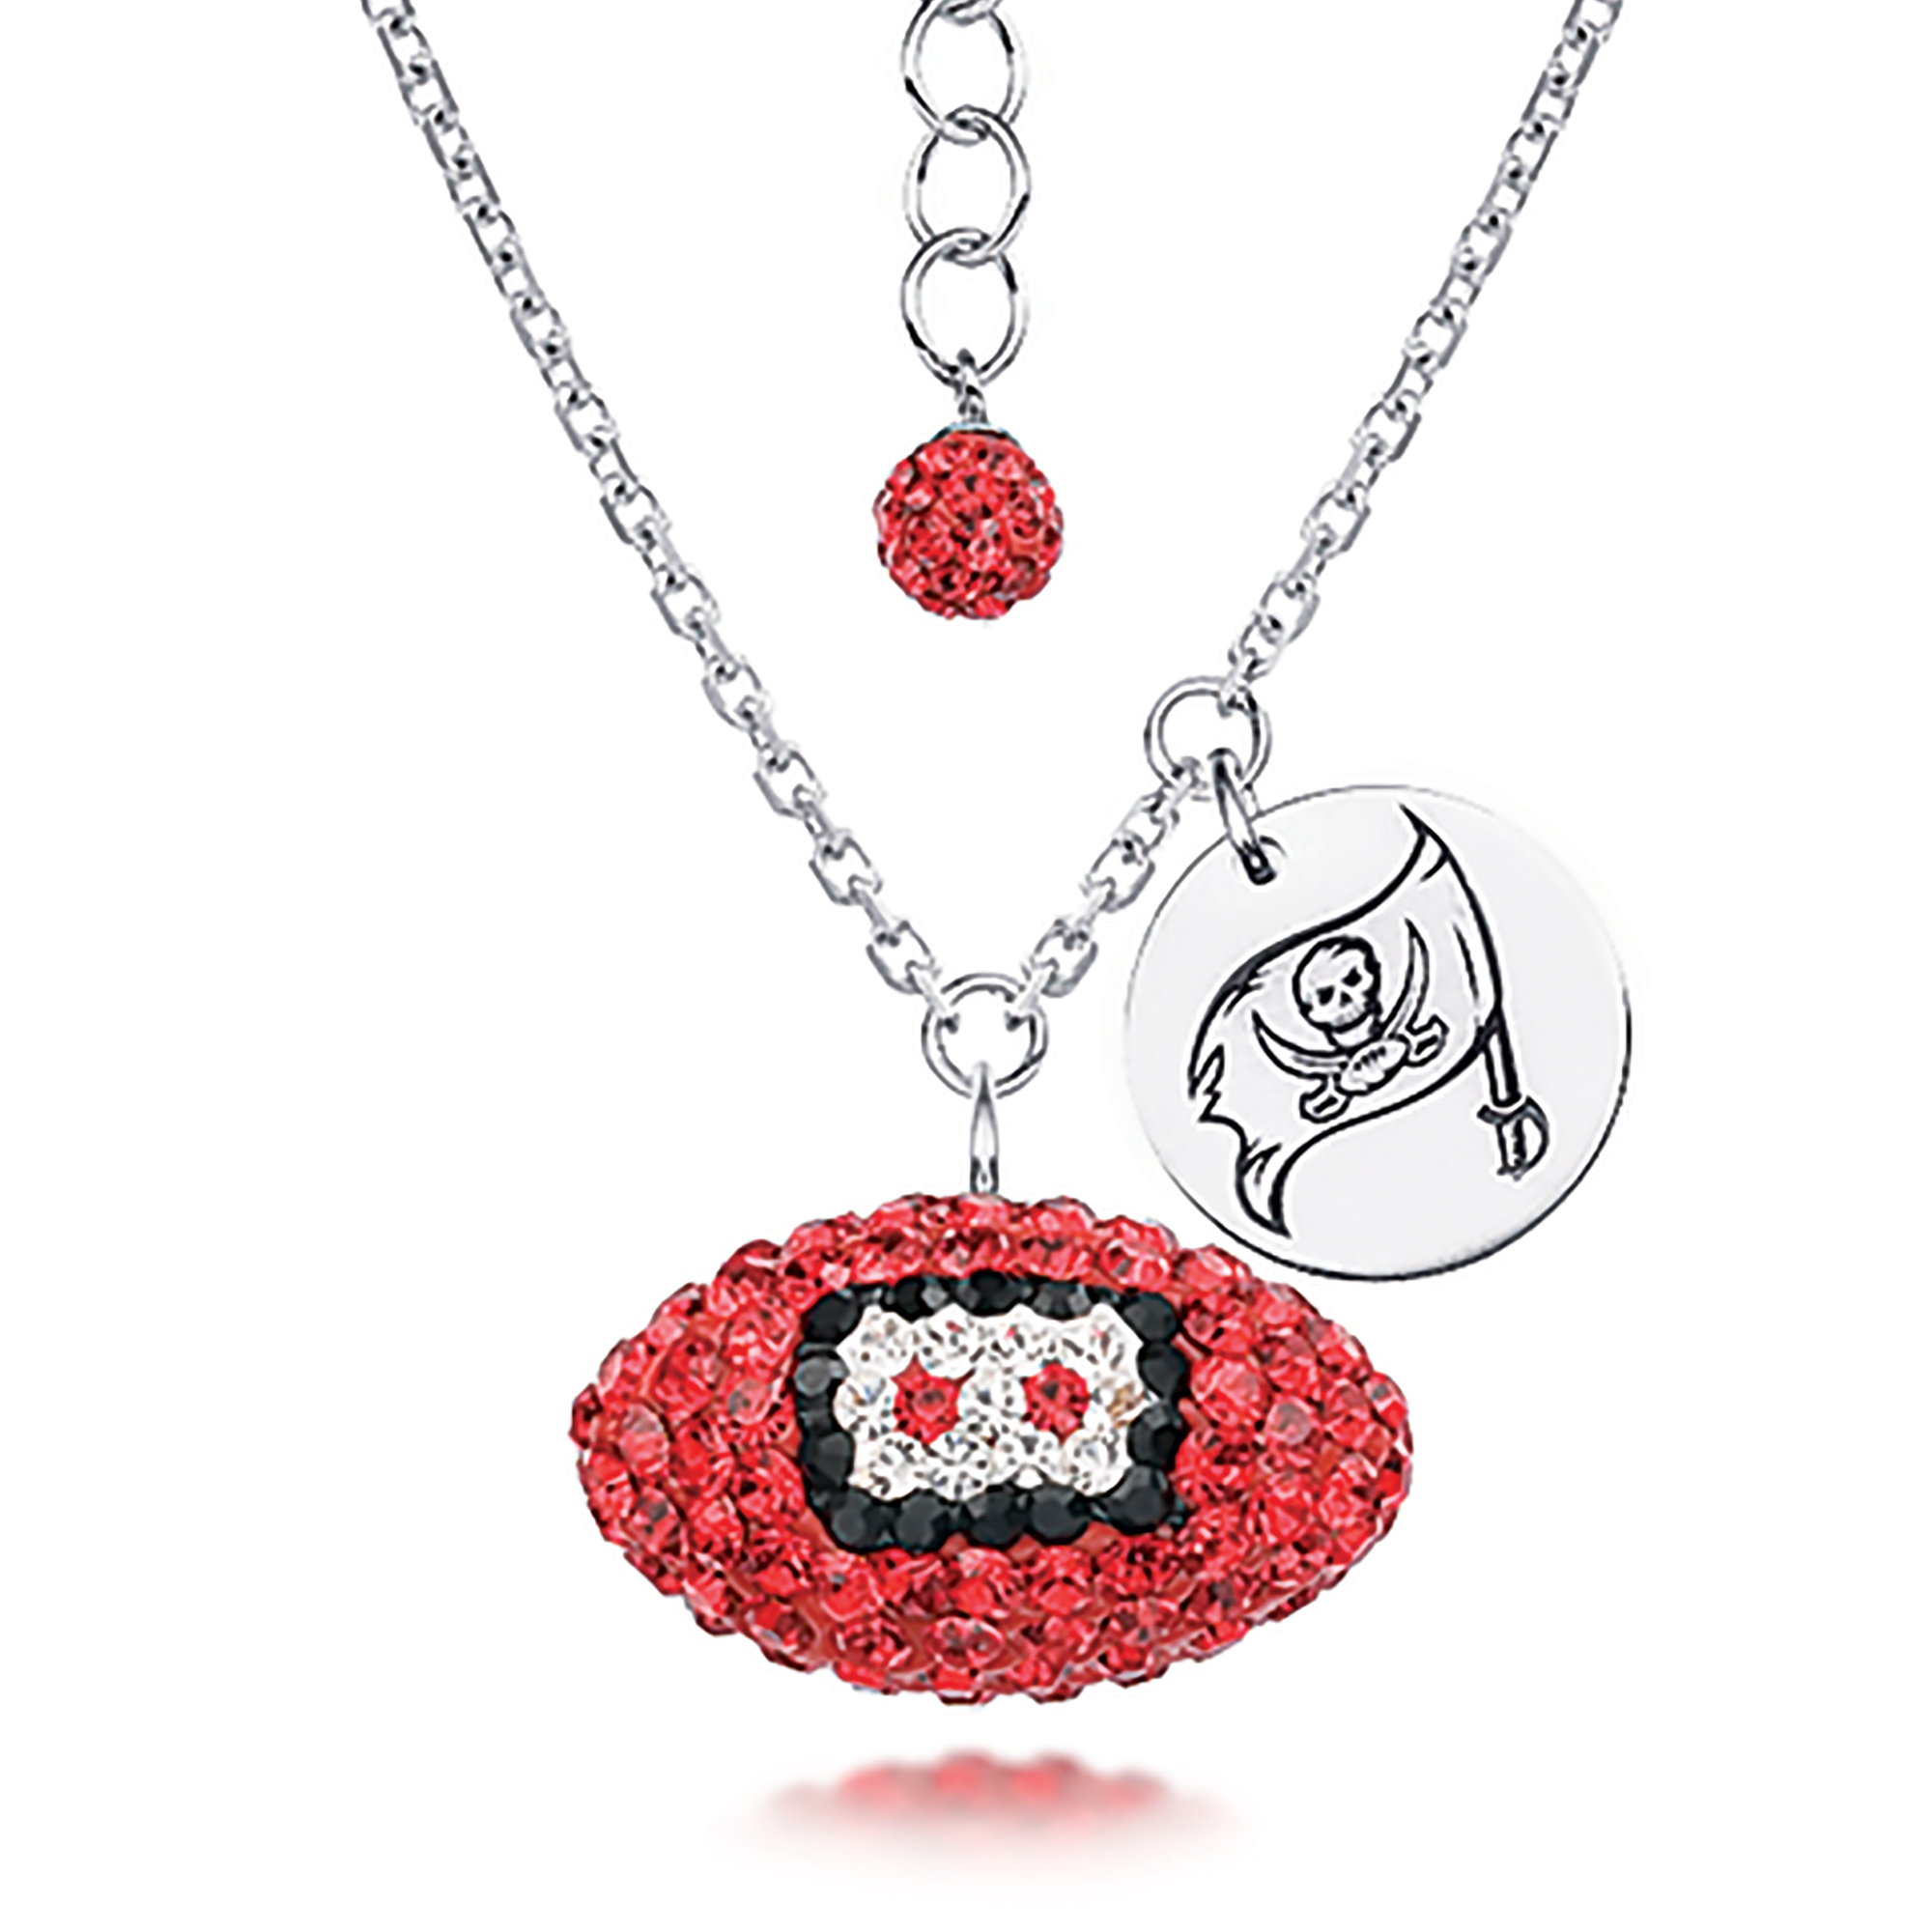 38b7182e2 Tampa Bay Buccaneers Necklace Licensed NFL Team Crystal Football and Logo  Charm